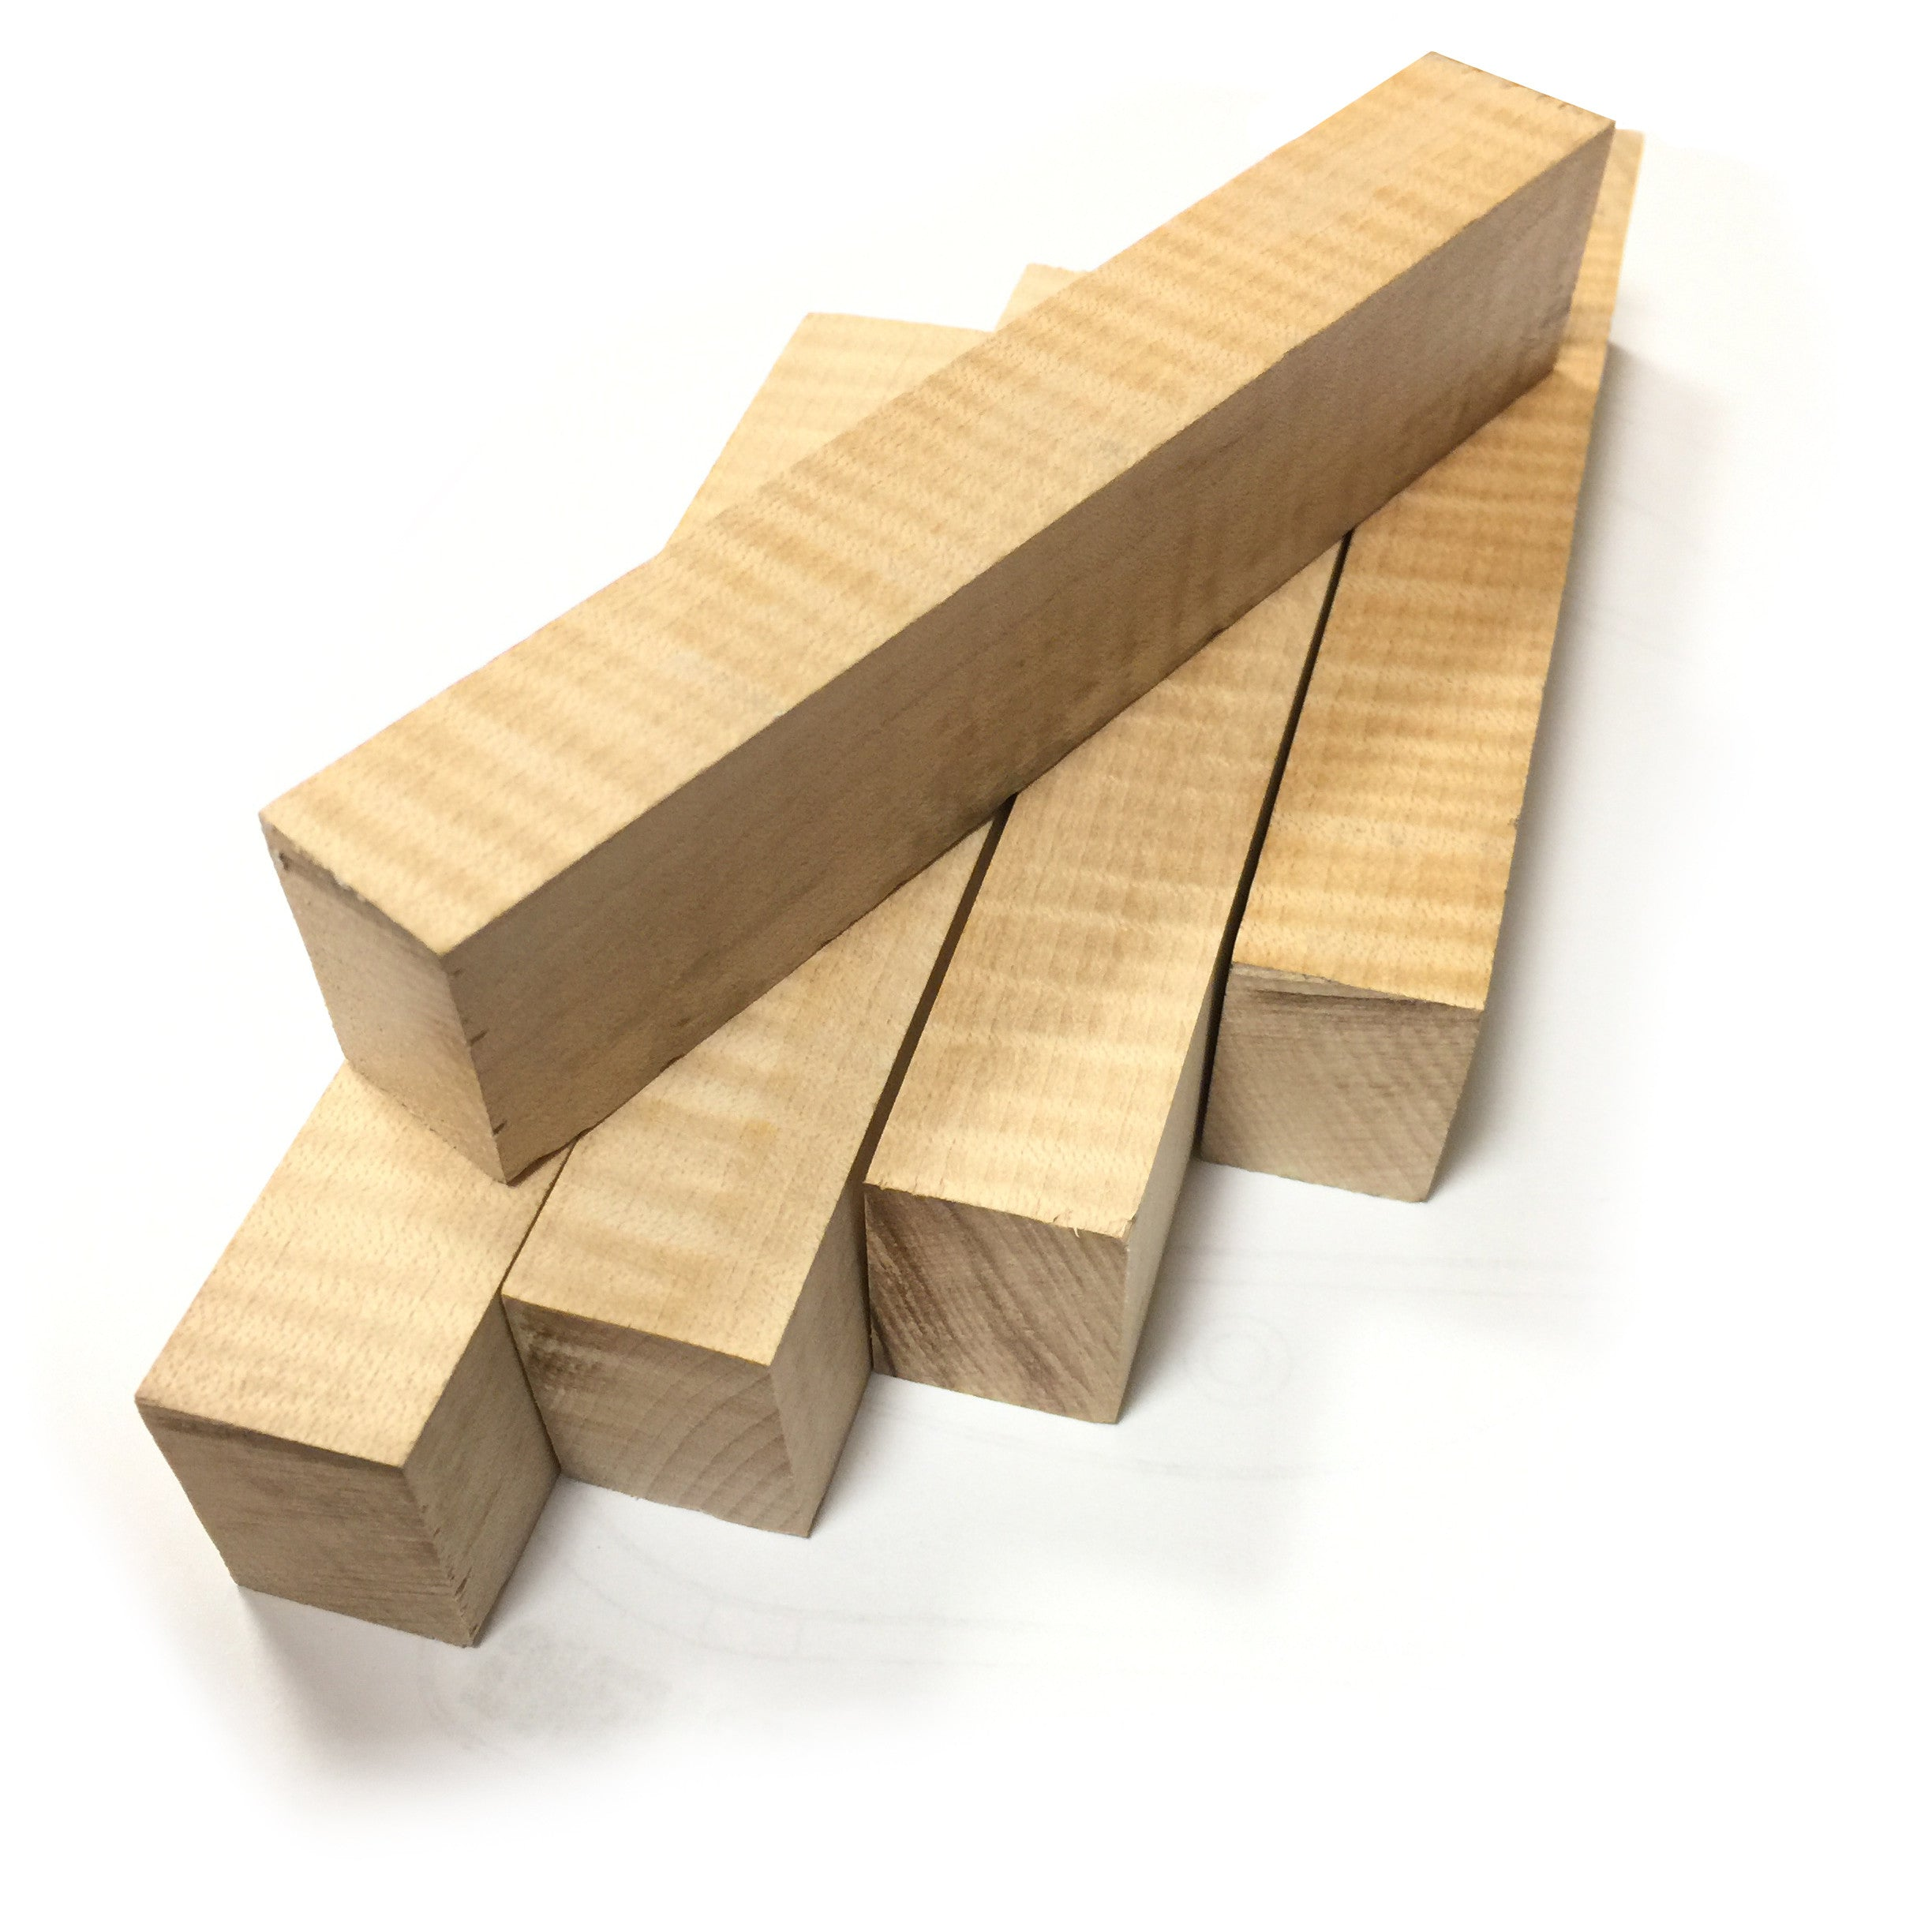 Curly Maple Pen Blanks - 5 Pack - Cousineau Wood Products, CWP-USA.com, DymaLux,  Spectraply, Turning blanks, Pepper Mill, Diamond Wood, Webb Wood, laminated wood